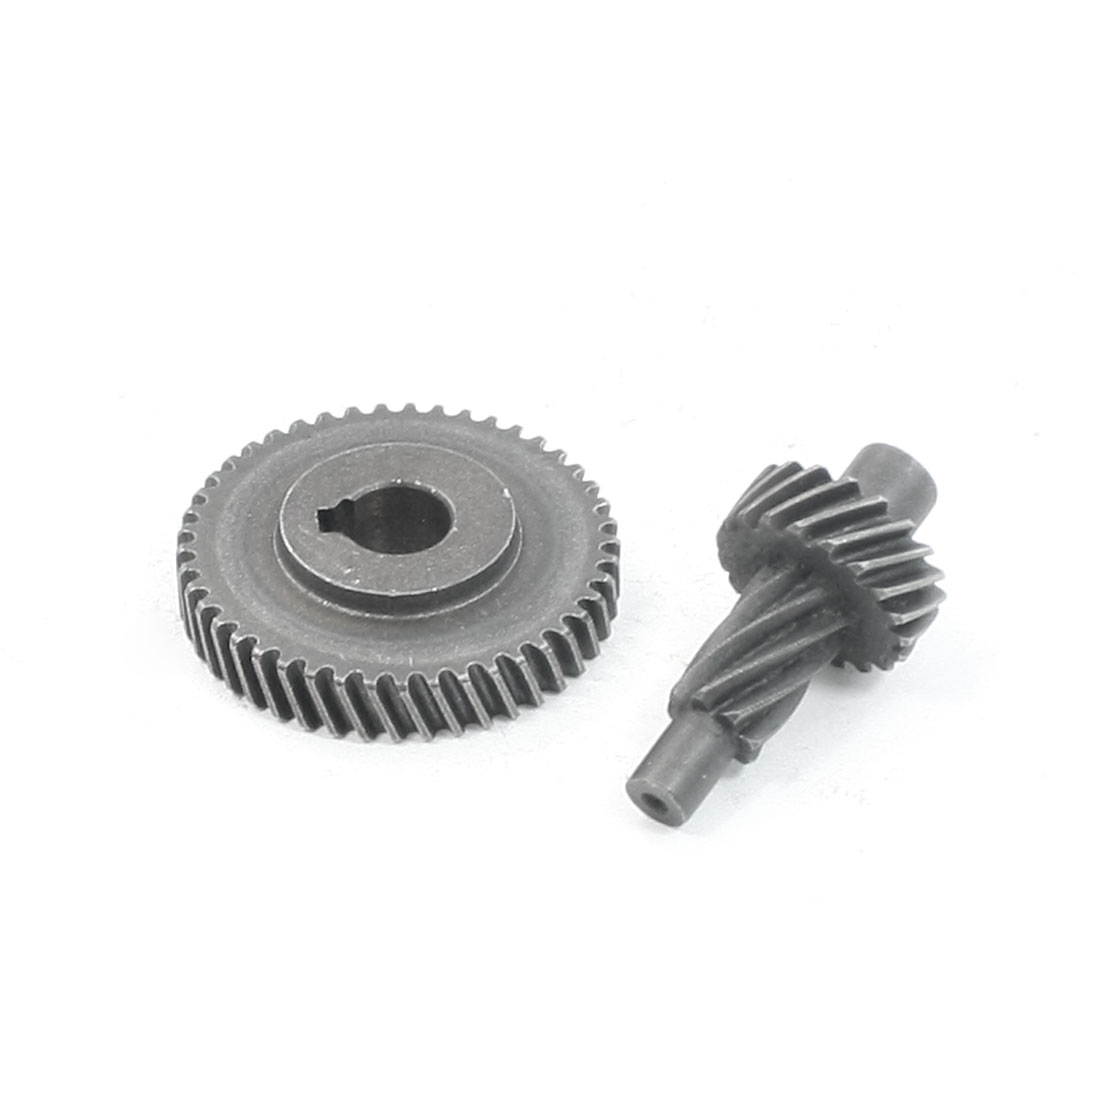 Replacement Part Spiral Helical Gear Pinion Set for Safun 10A Electric Drill